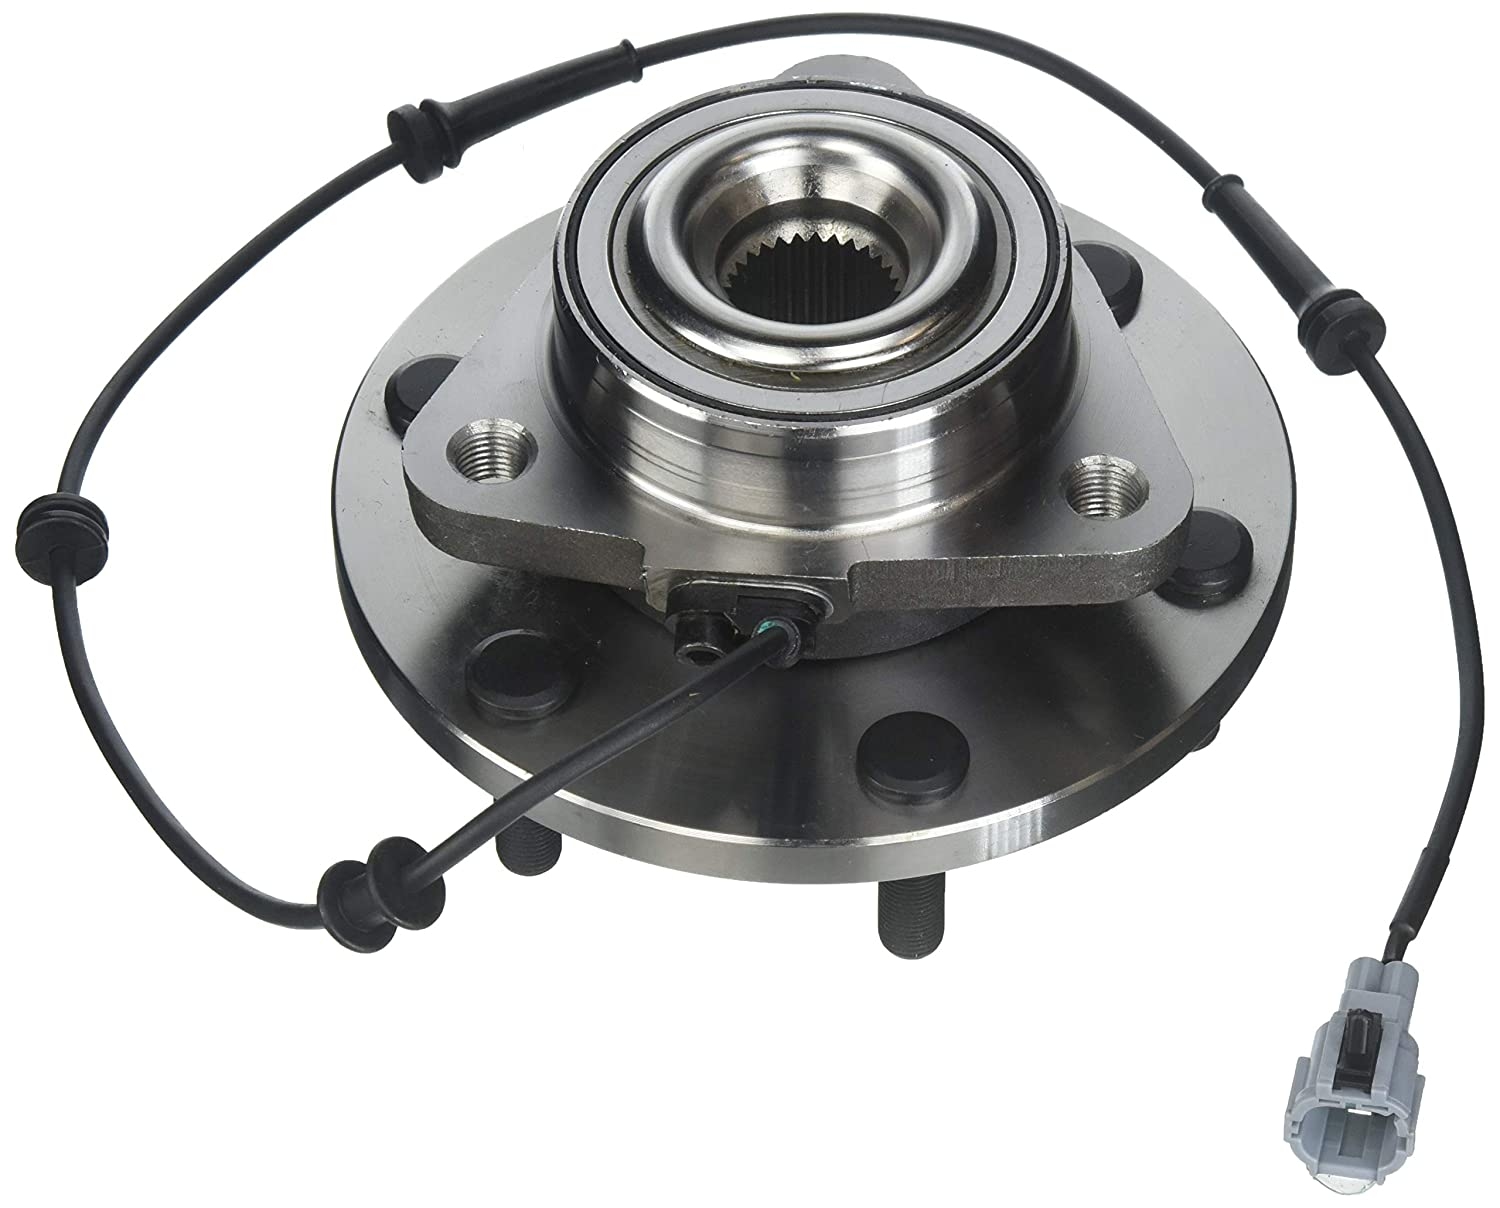 ECCPP Wheel Hub and Bearing Assembly front 515066 fit 2004-2008 Nissan Titan Armada Infiniti QX56 Replacement for 6 lugs wheel hub with ABS 3 Bolt Flange 1 piece